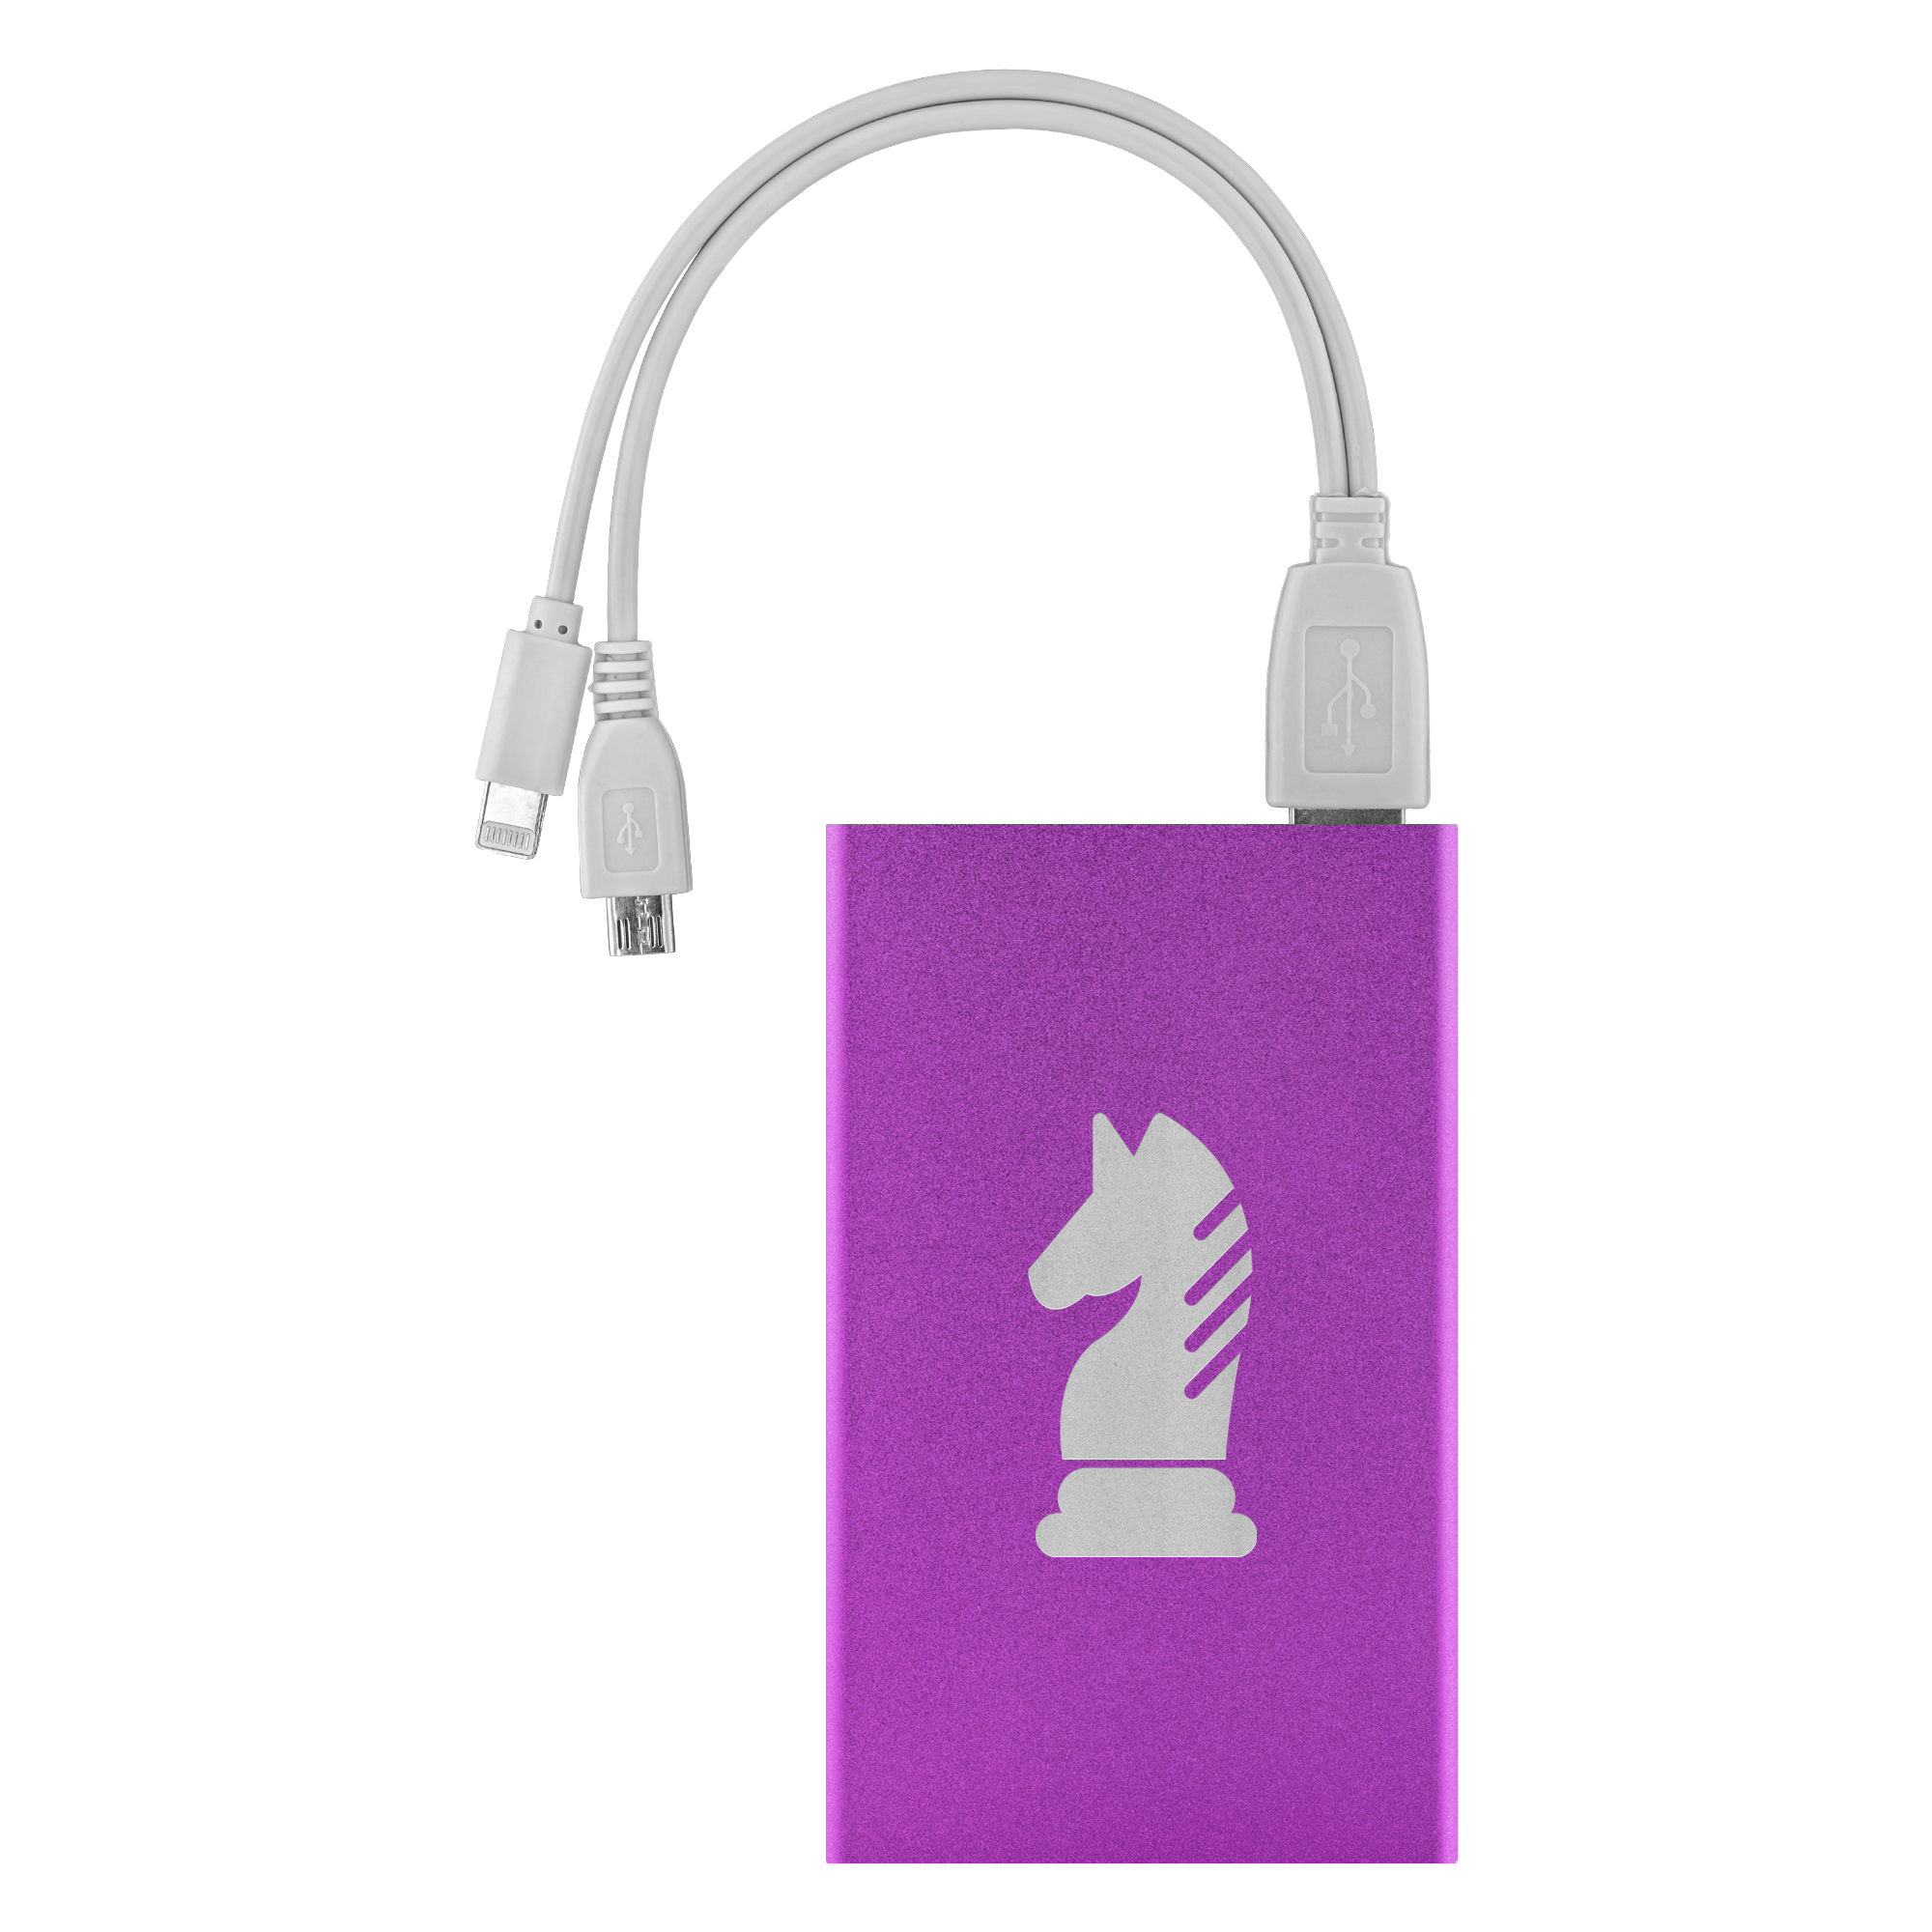 Chess Knight laser etched Lithium-Ion power bank